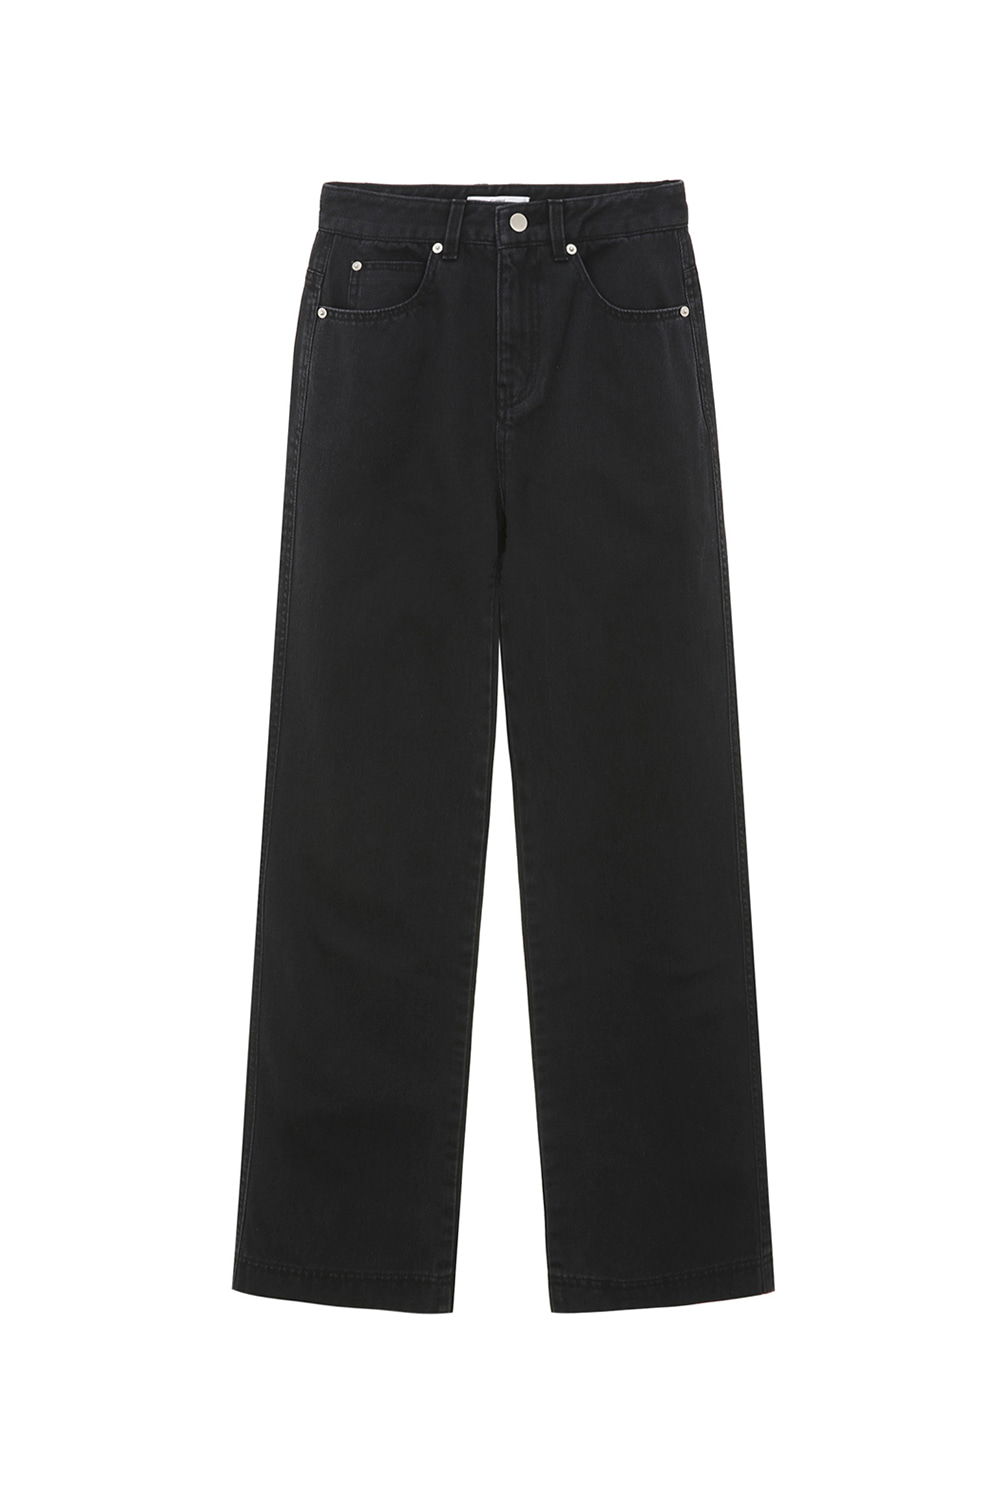 Dusty Color Denim Women [Charcoal Gray]